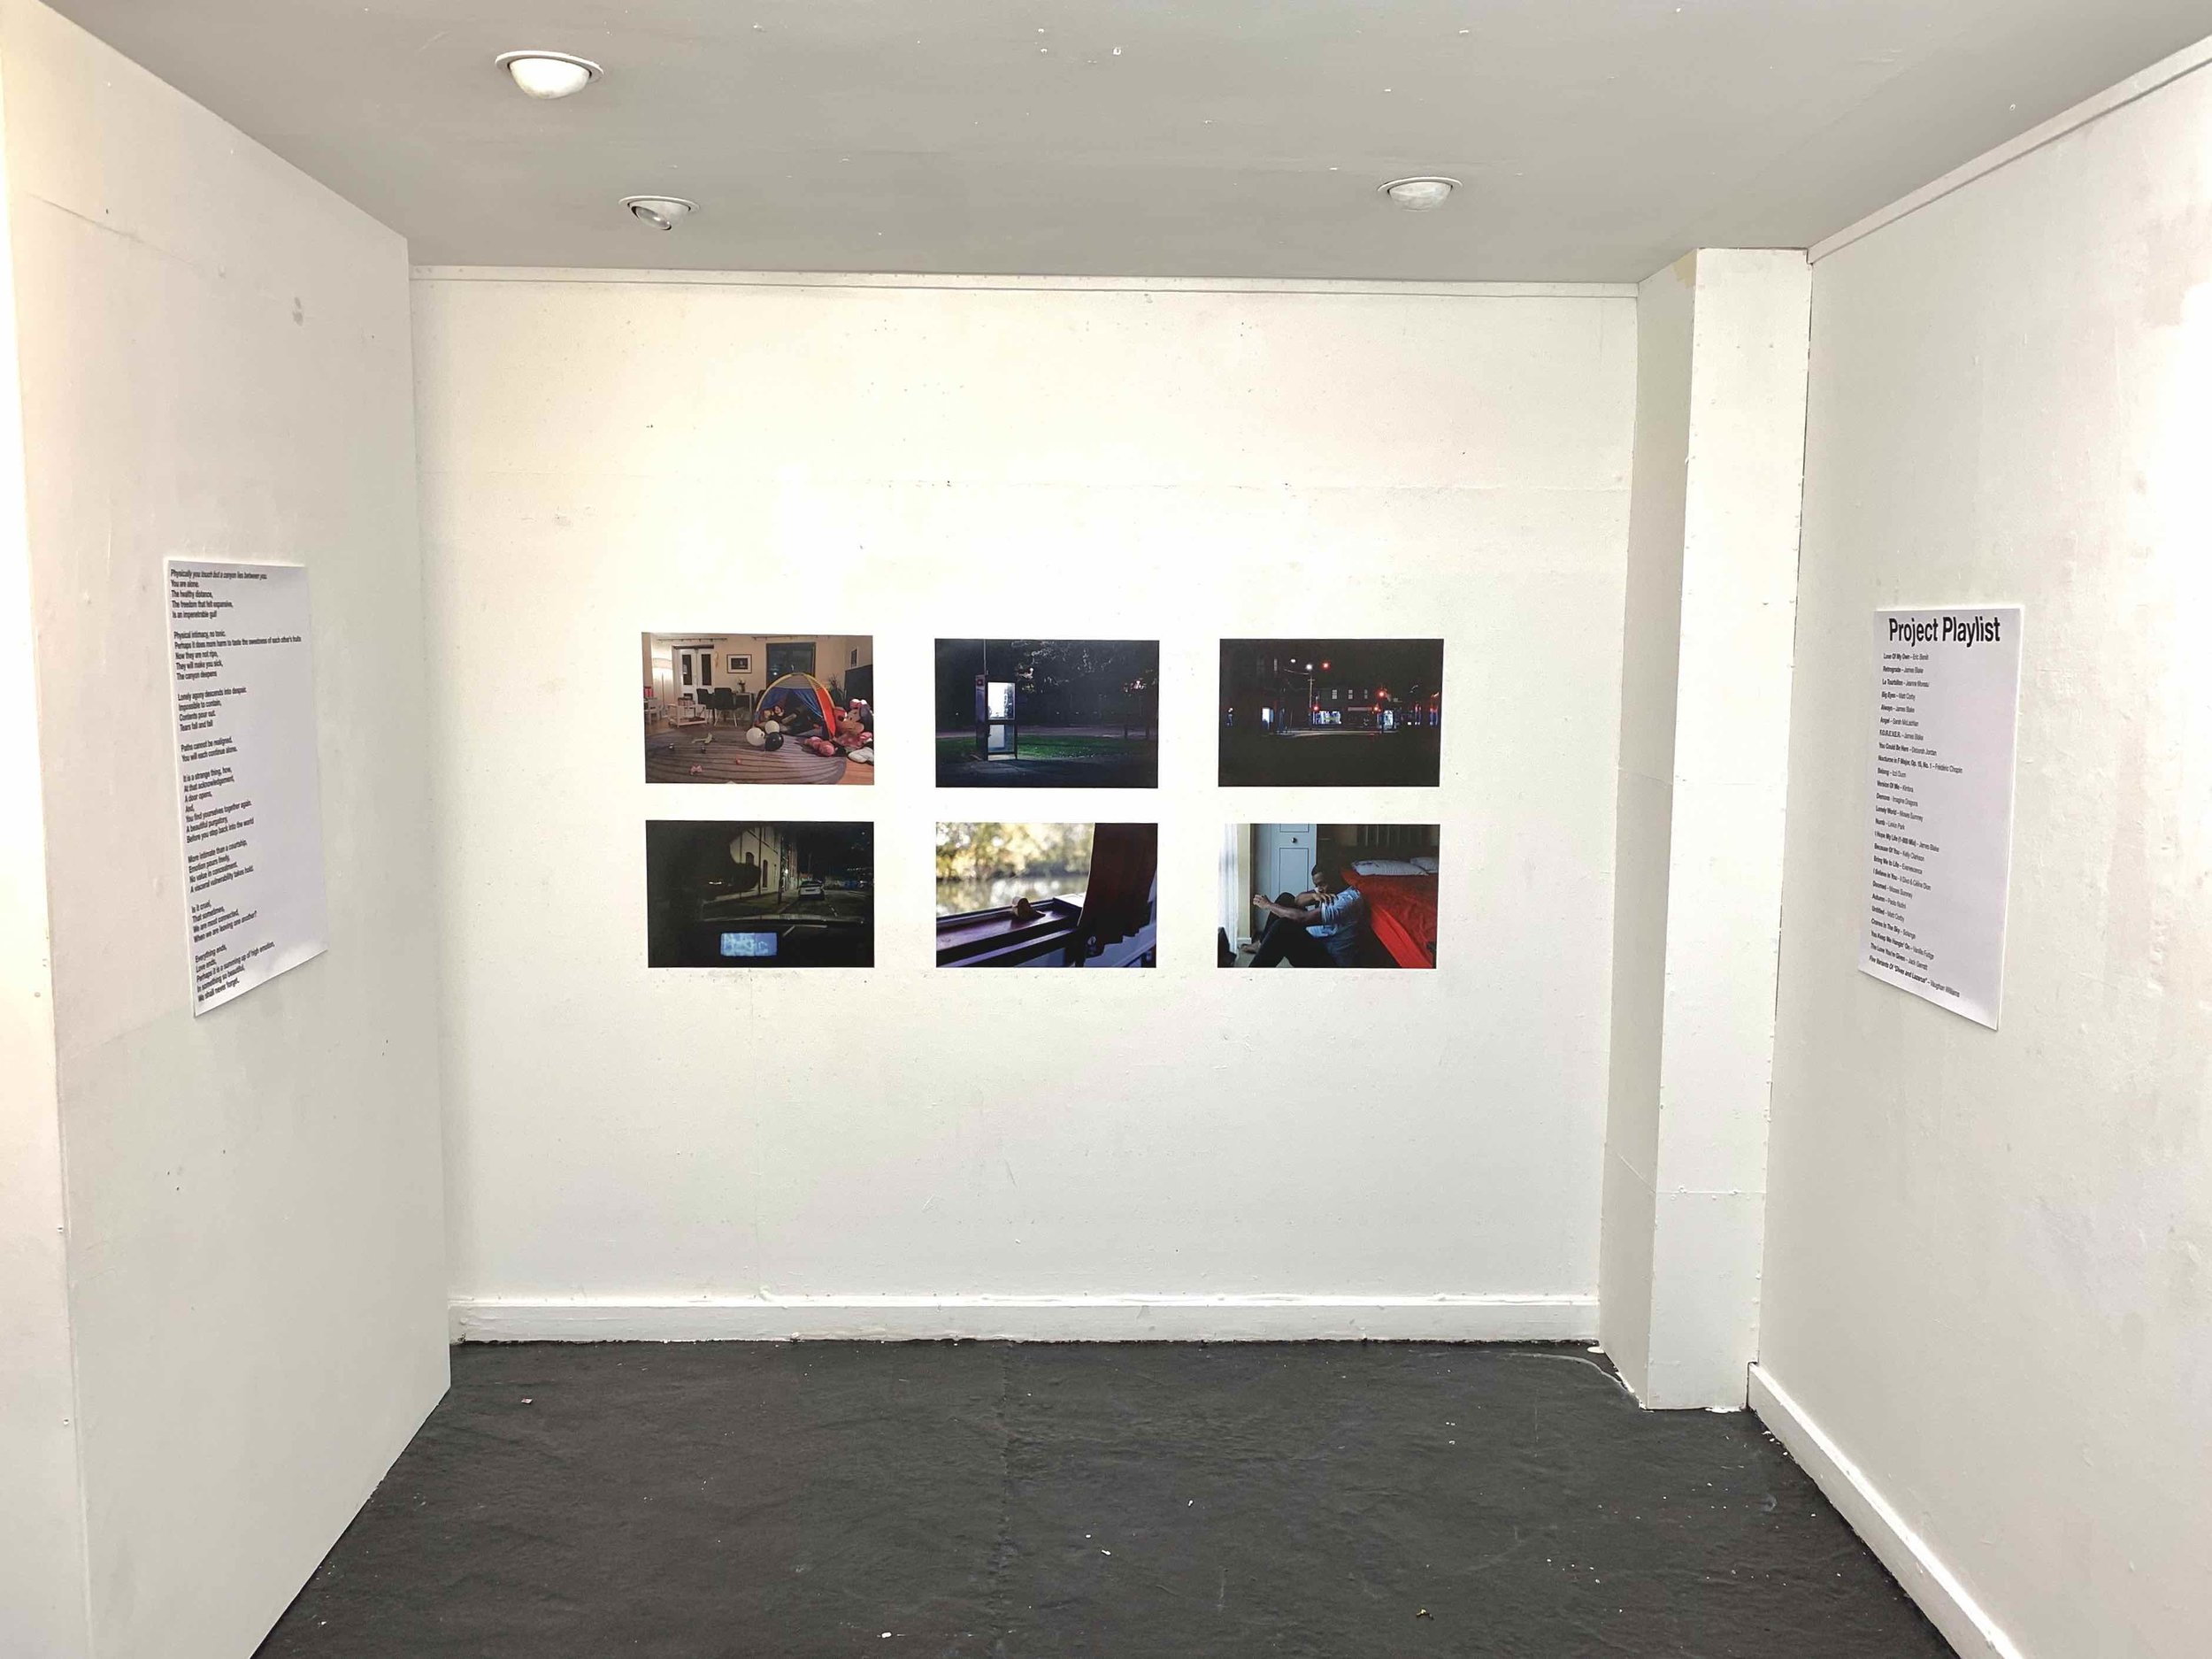 6 image grid on show at the FMP exhibition